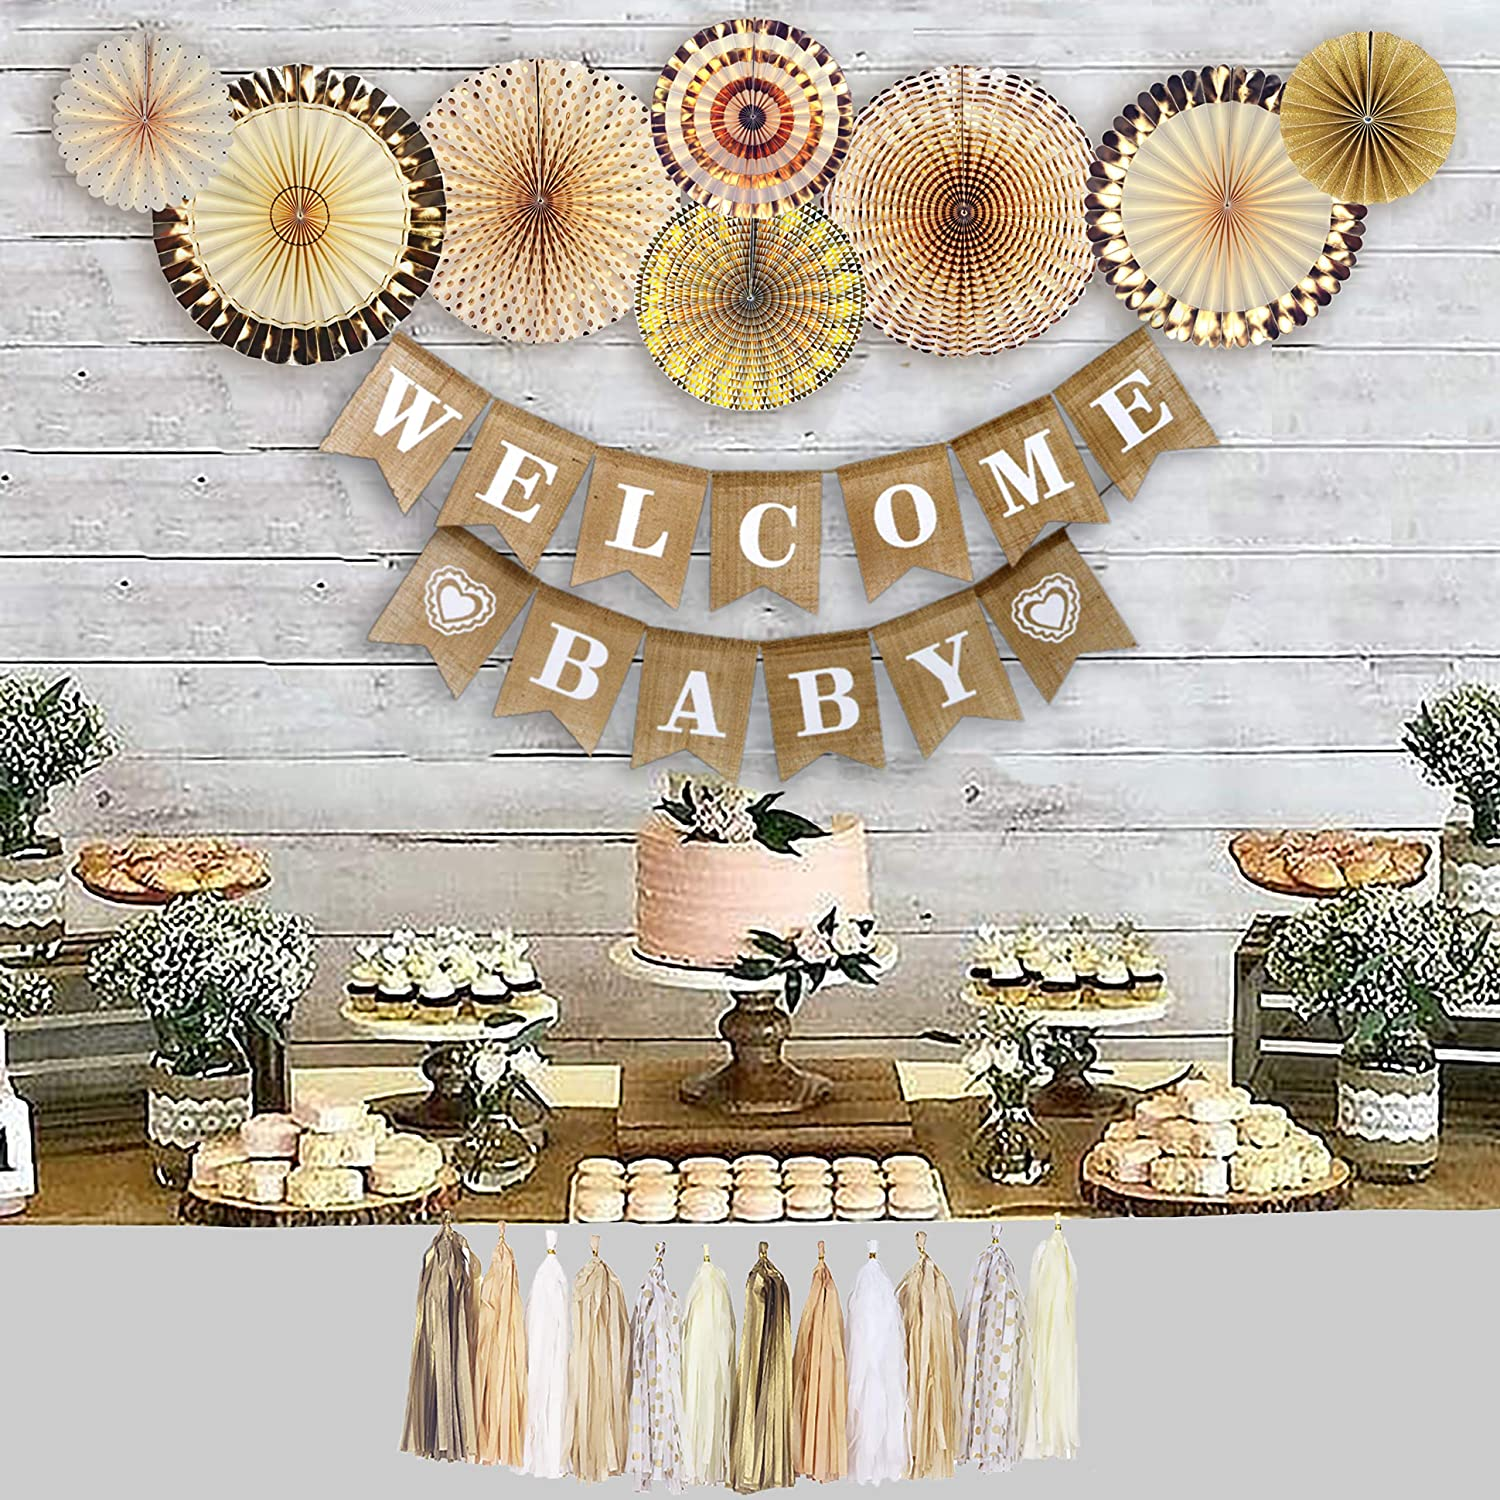 Yara Neutral Baby Shower Decorations For Boy Or Girl Kit Rustic Welcome Baby 551240490774 Ebay